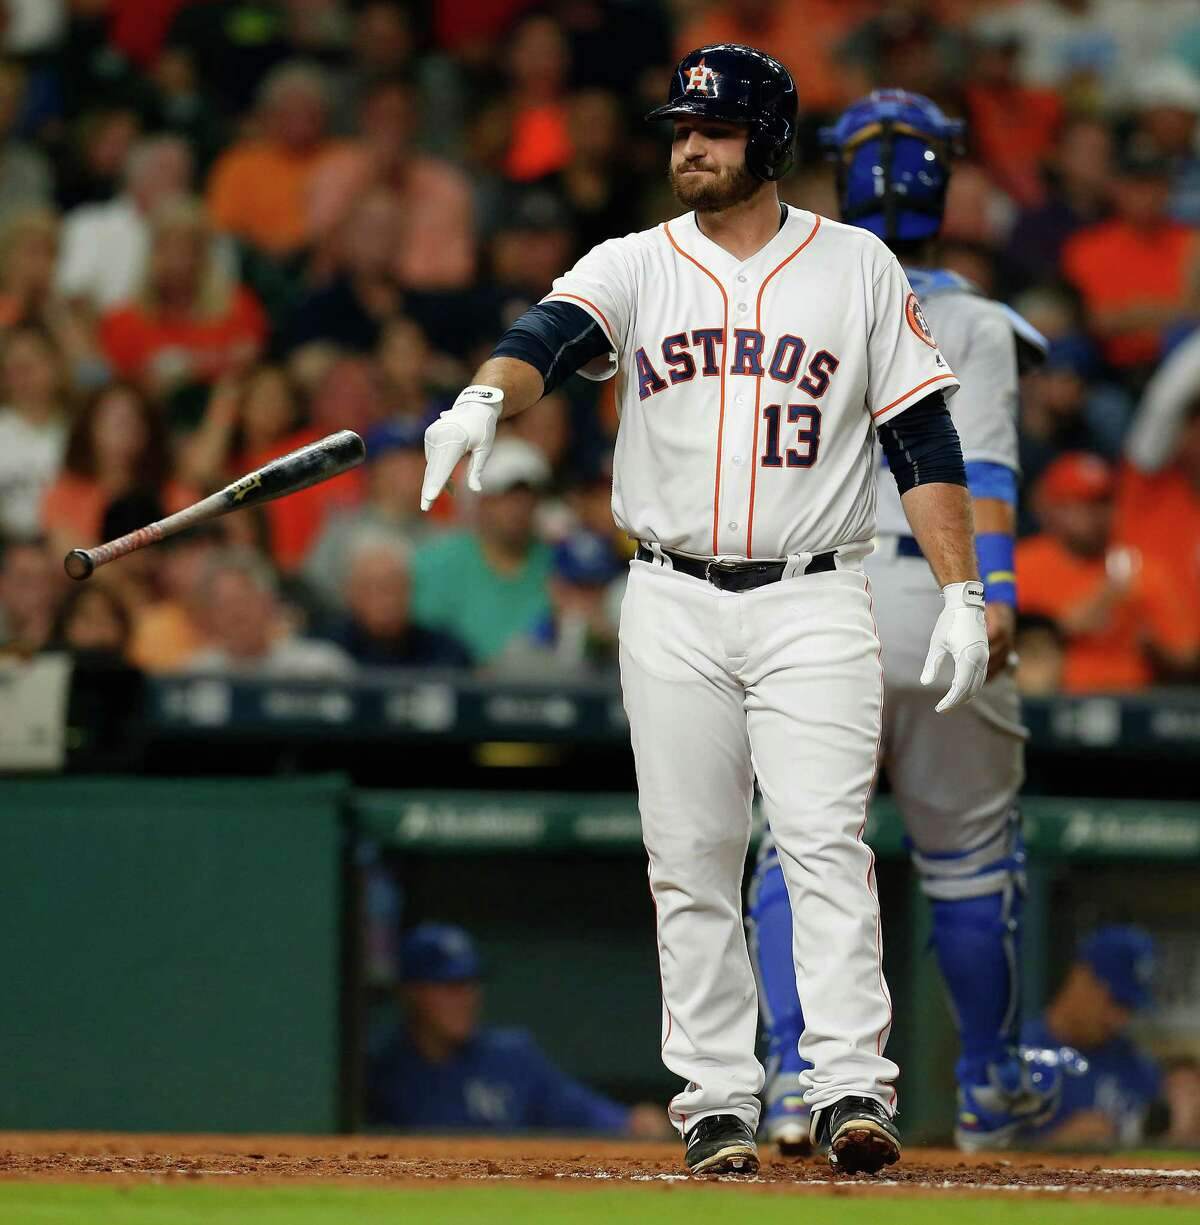 Situational hitting has been an early bugaboo for Tyler White and the Astros.